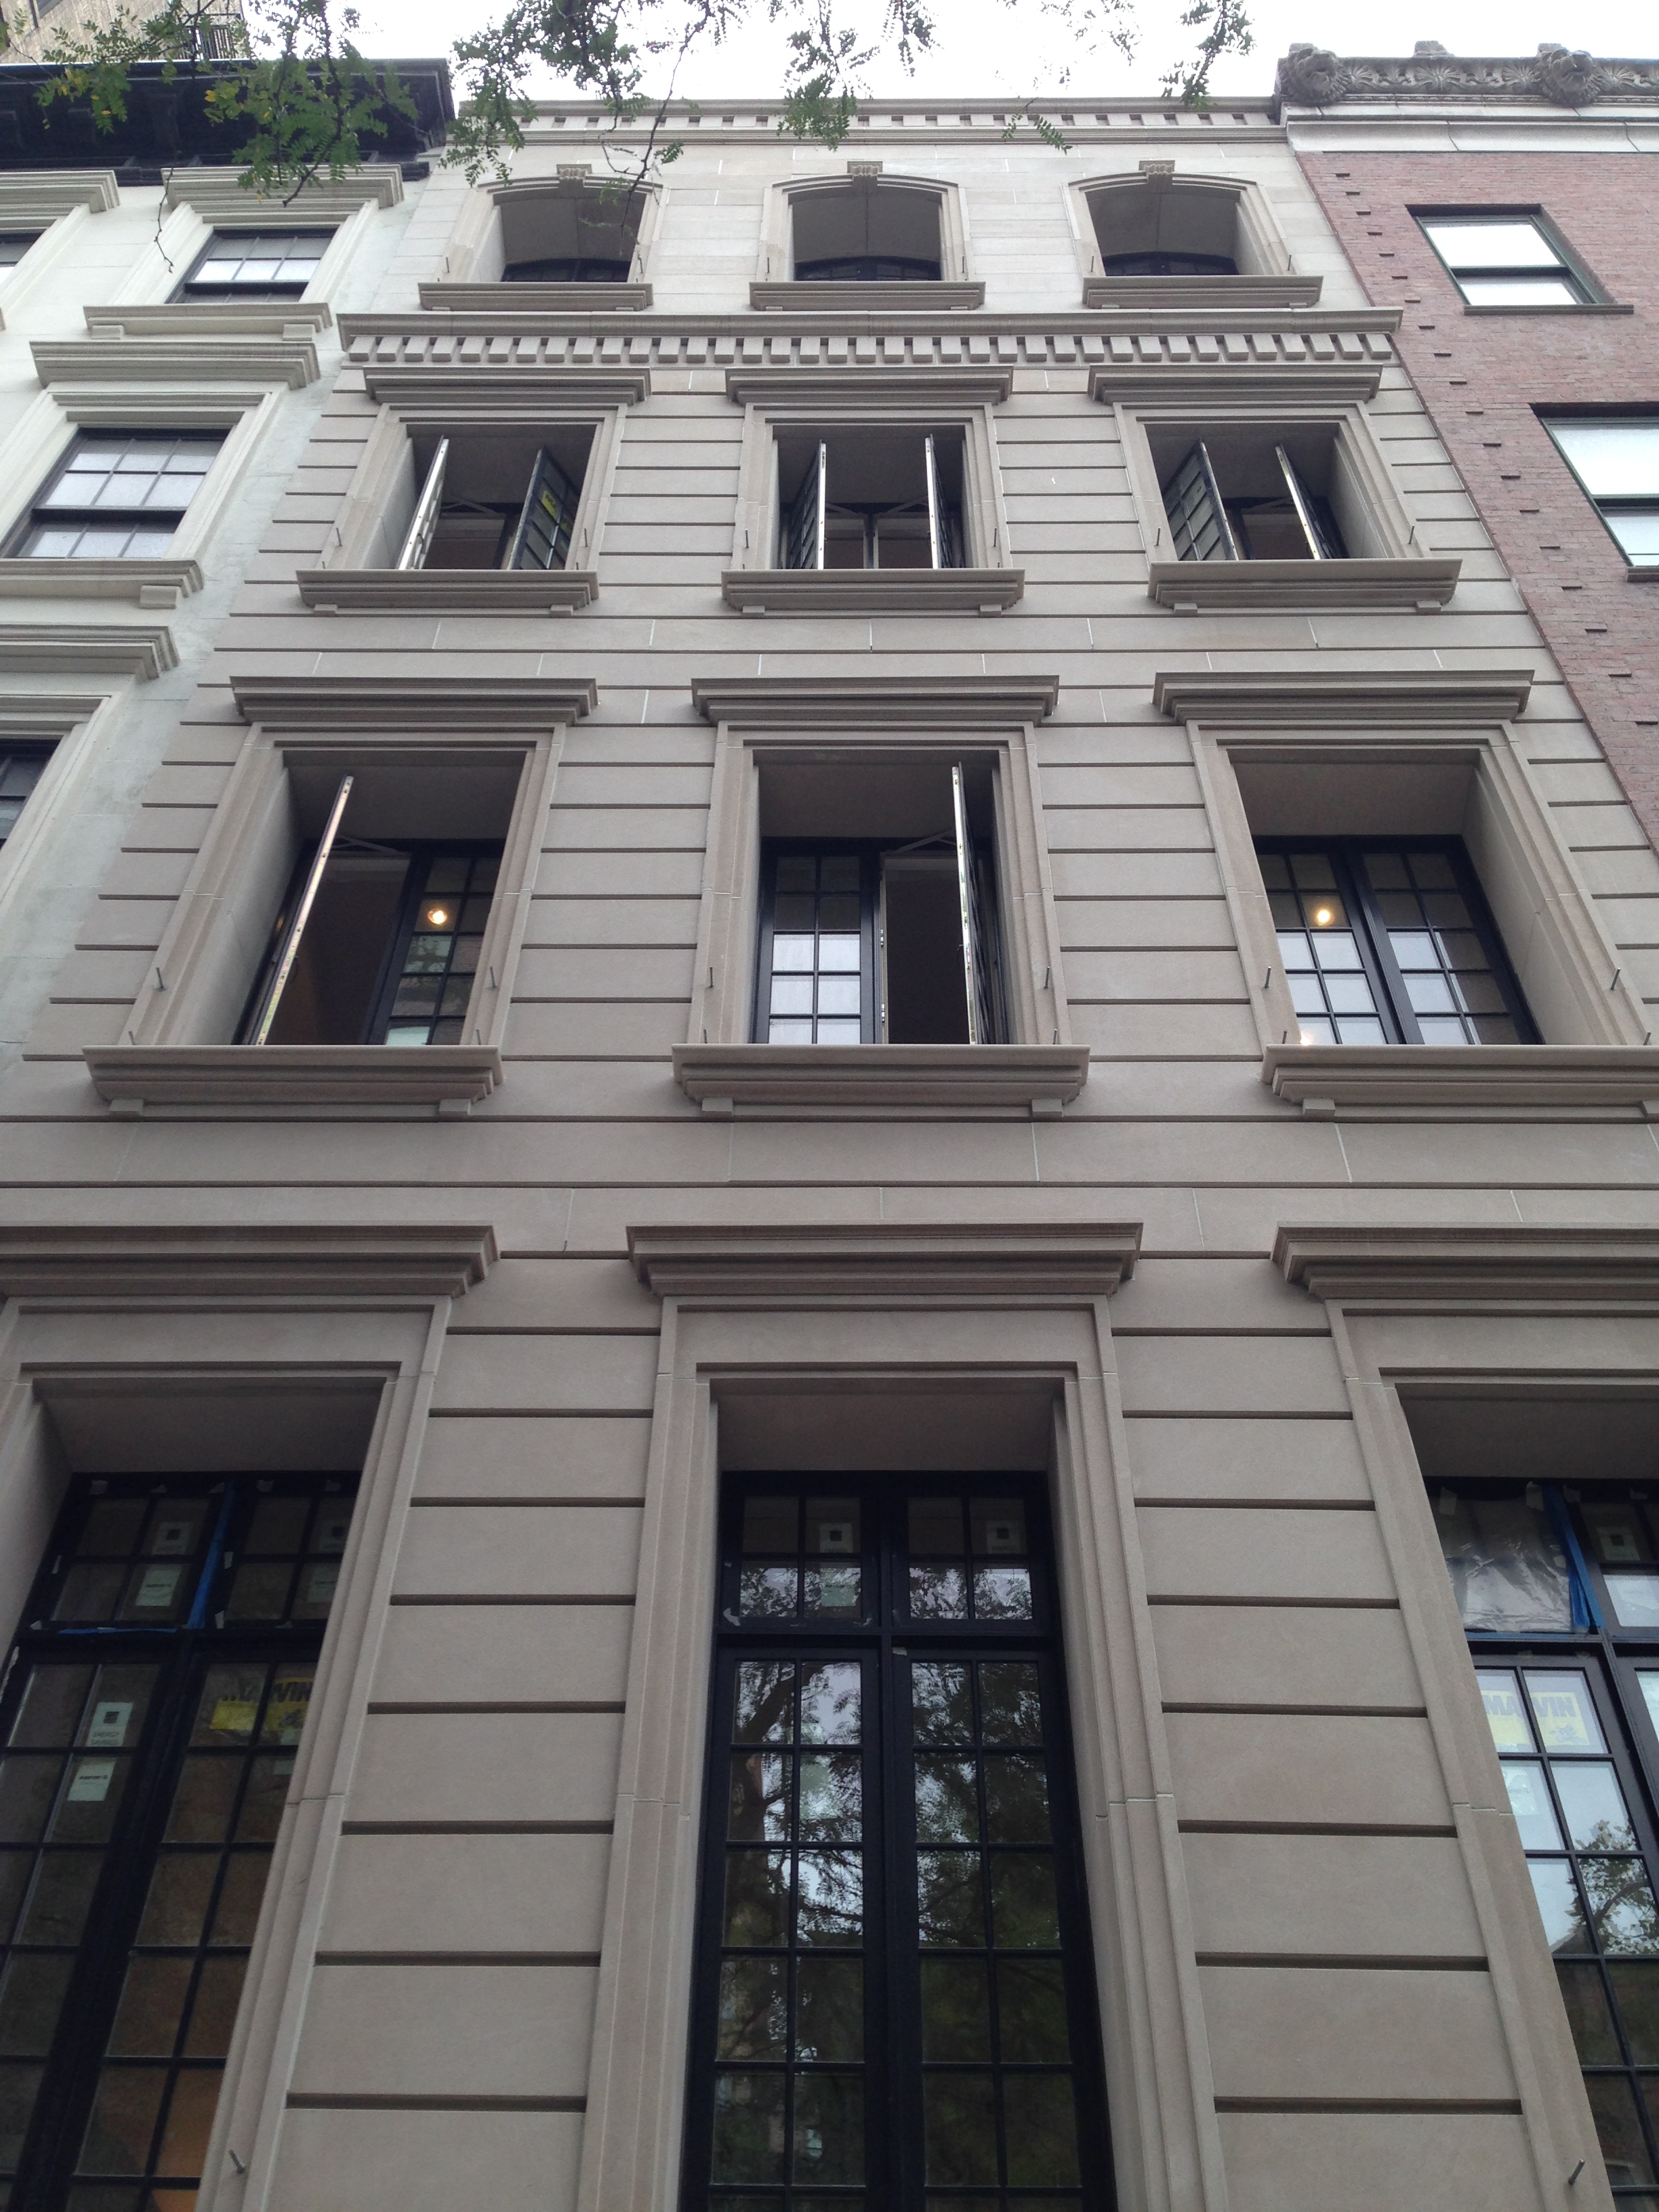 Limestone townhouse upper east side ny architectural for Upper east side townhouses